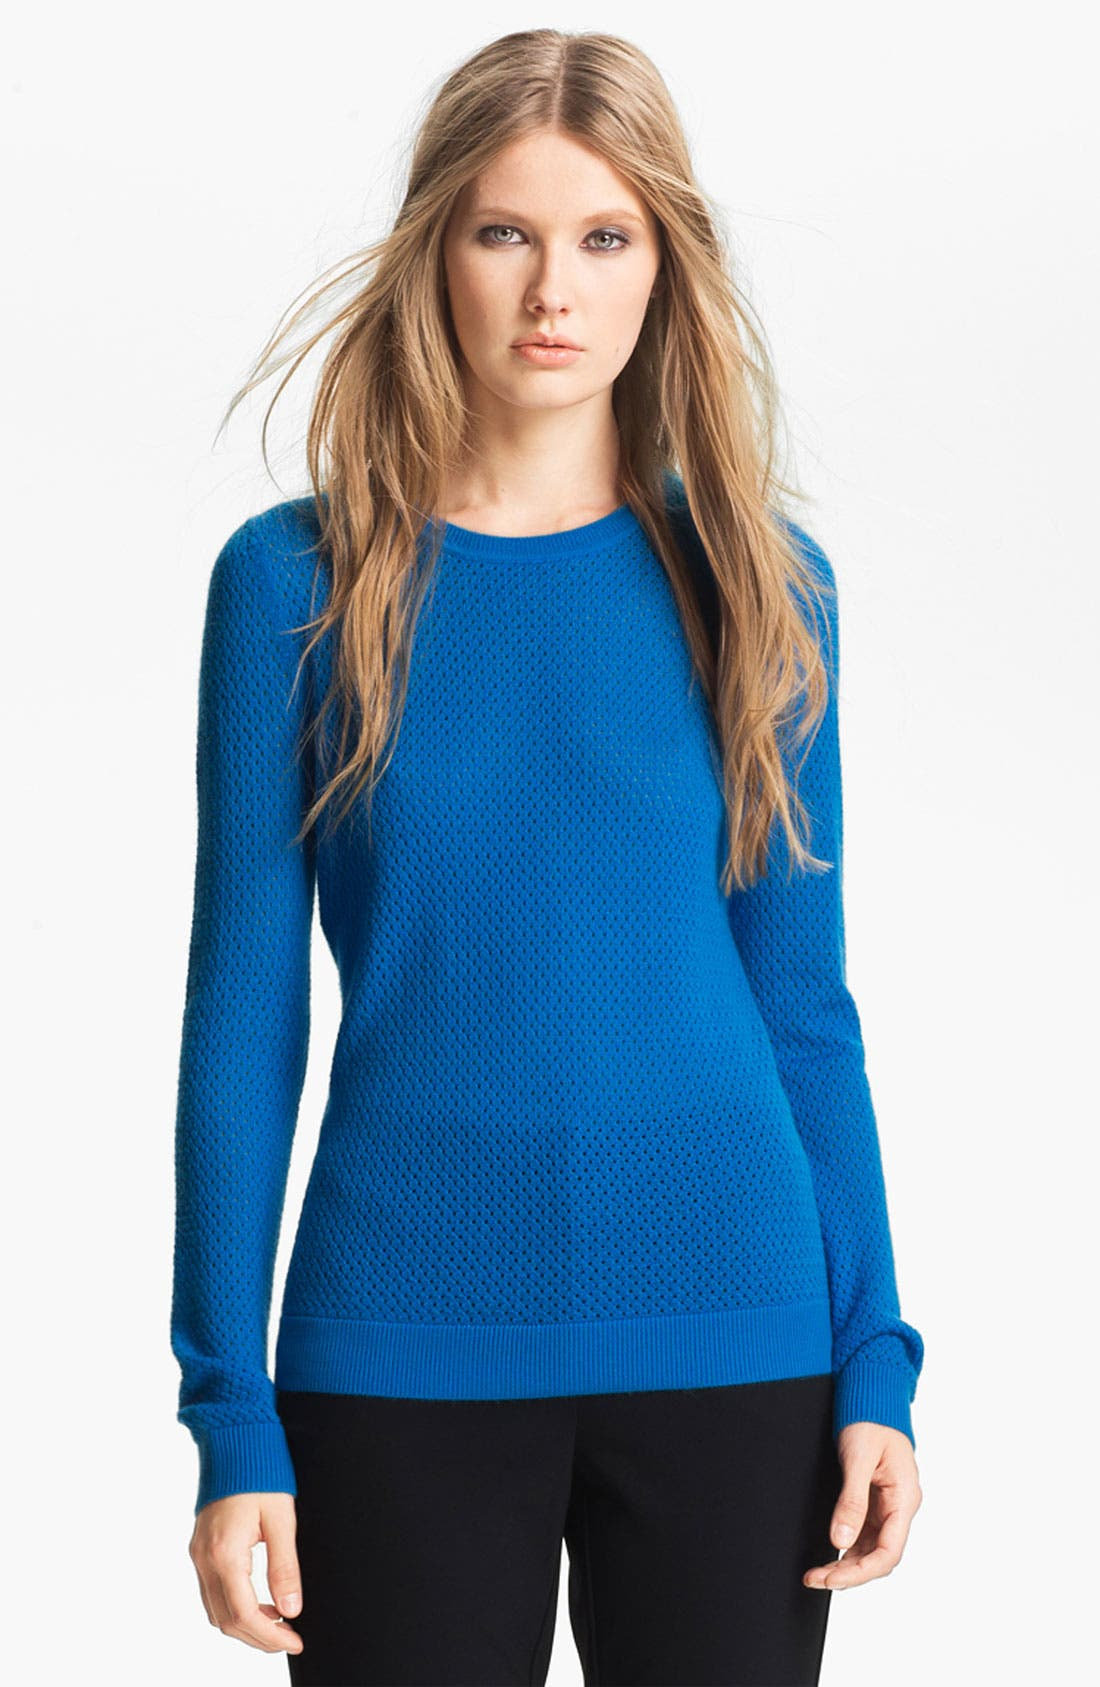 Main Image - Miss Wu 'Sofie' Stitch Detail Cashmere Sweater (Nordstrom Exclusive)